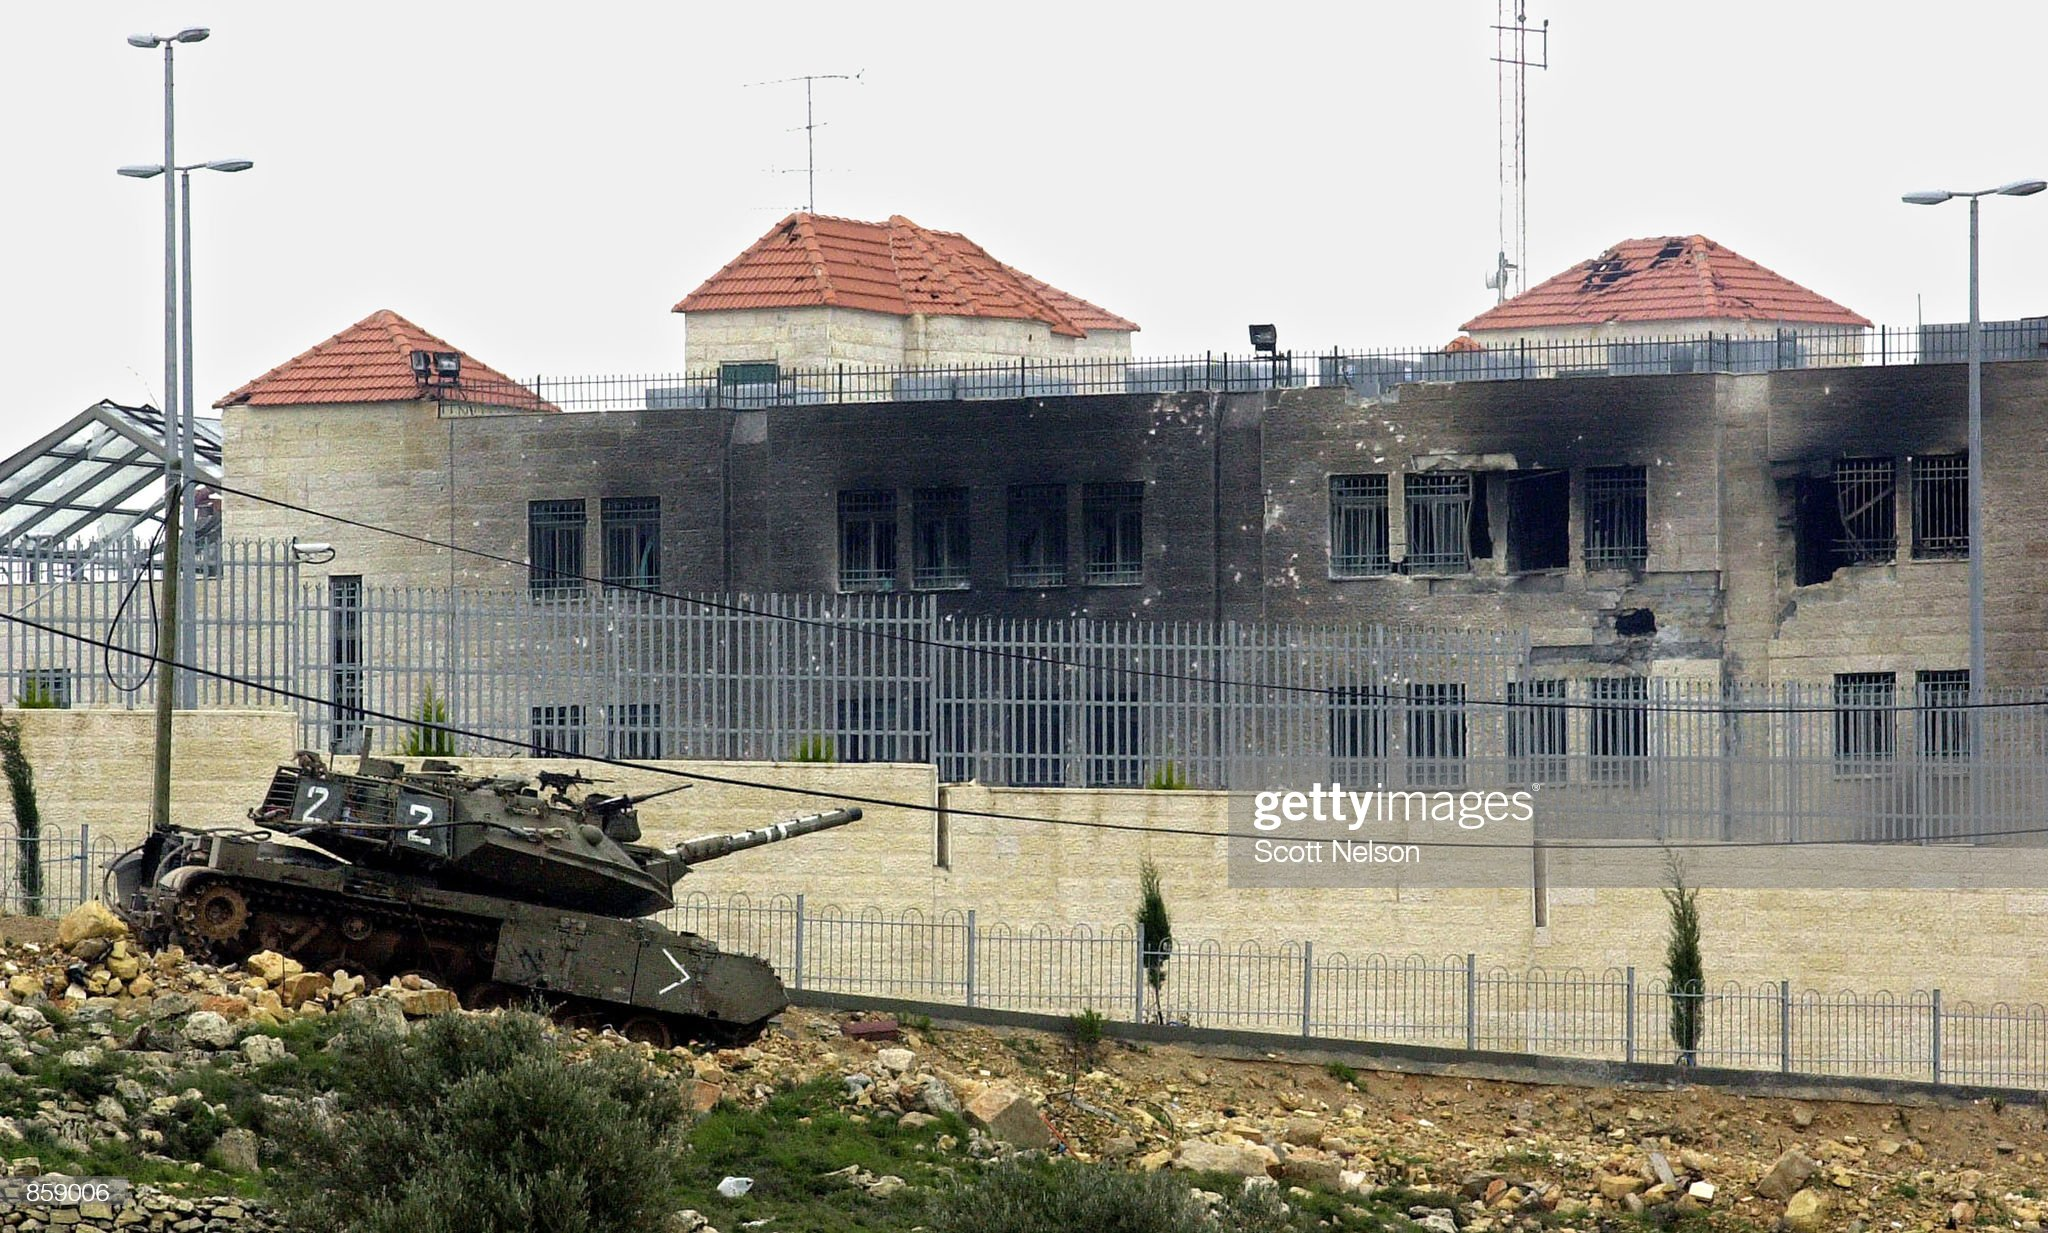 https://media.gettyimages.com/photos/an-israeli-tank-rolls-past-the-palestinian-preventitive-security-a-picture-id859006?s=2048x2048